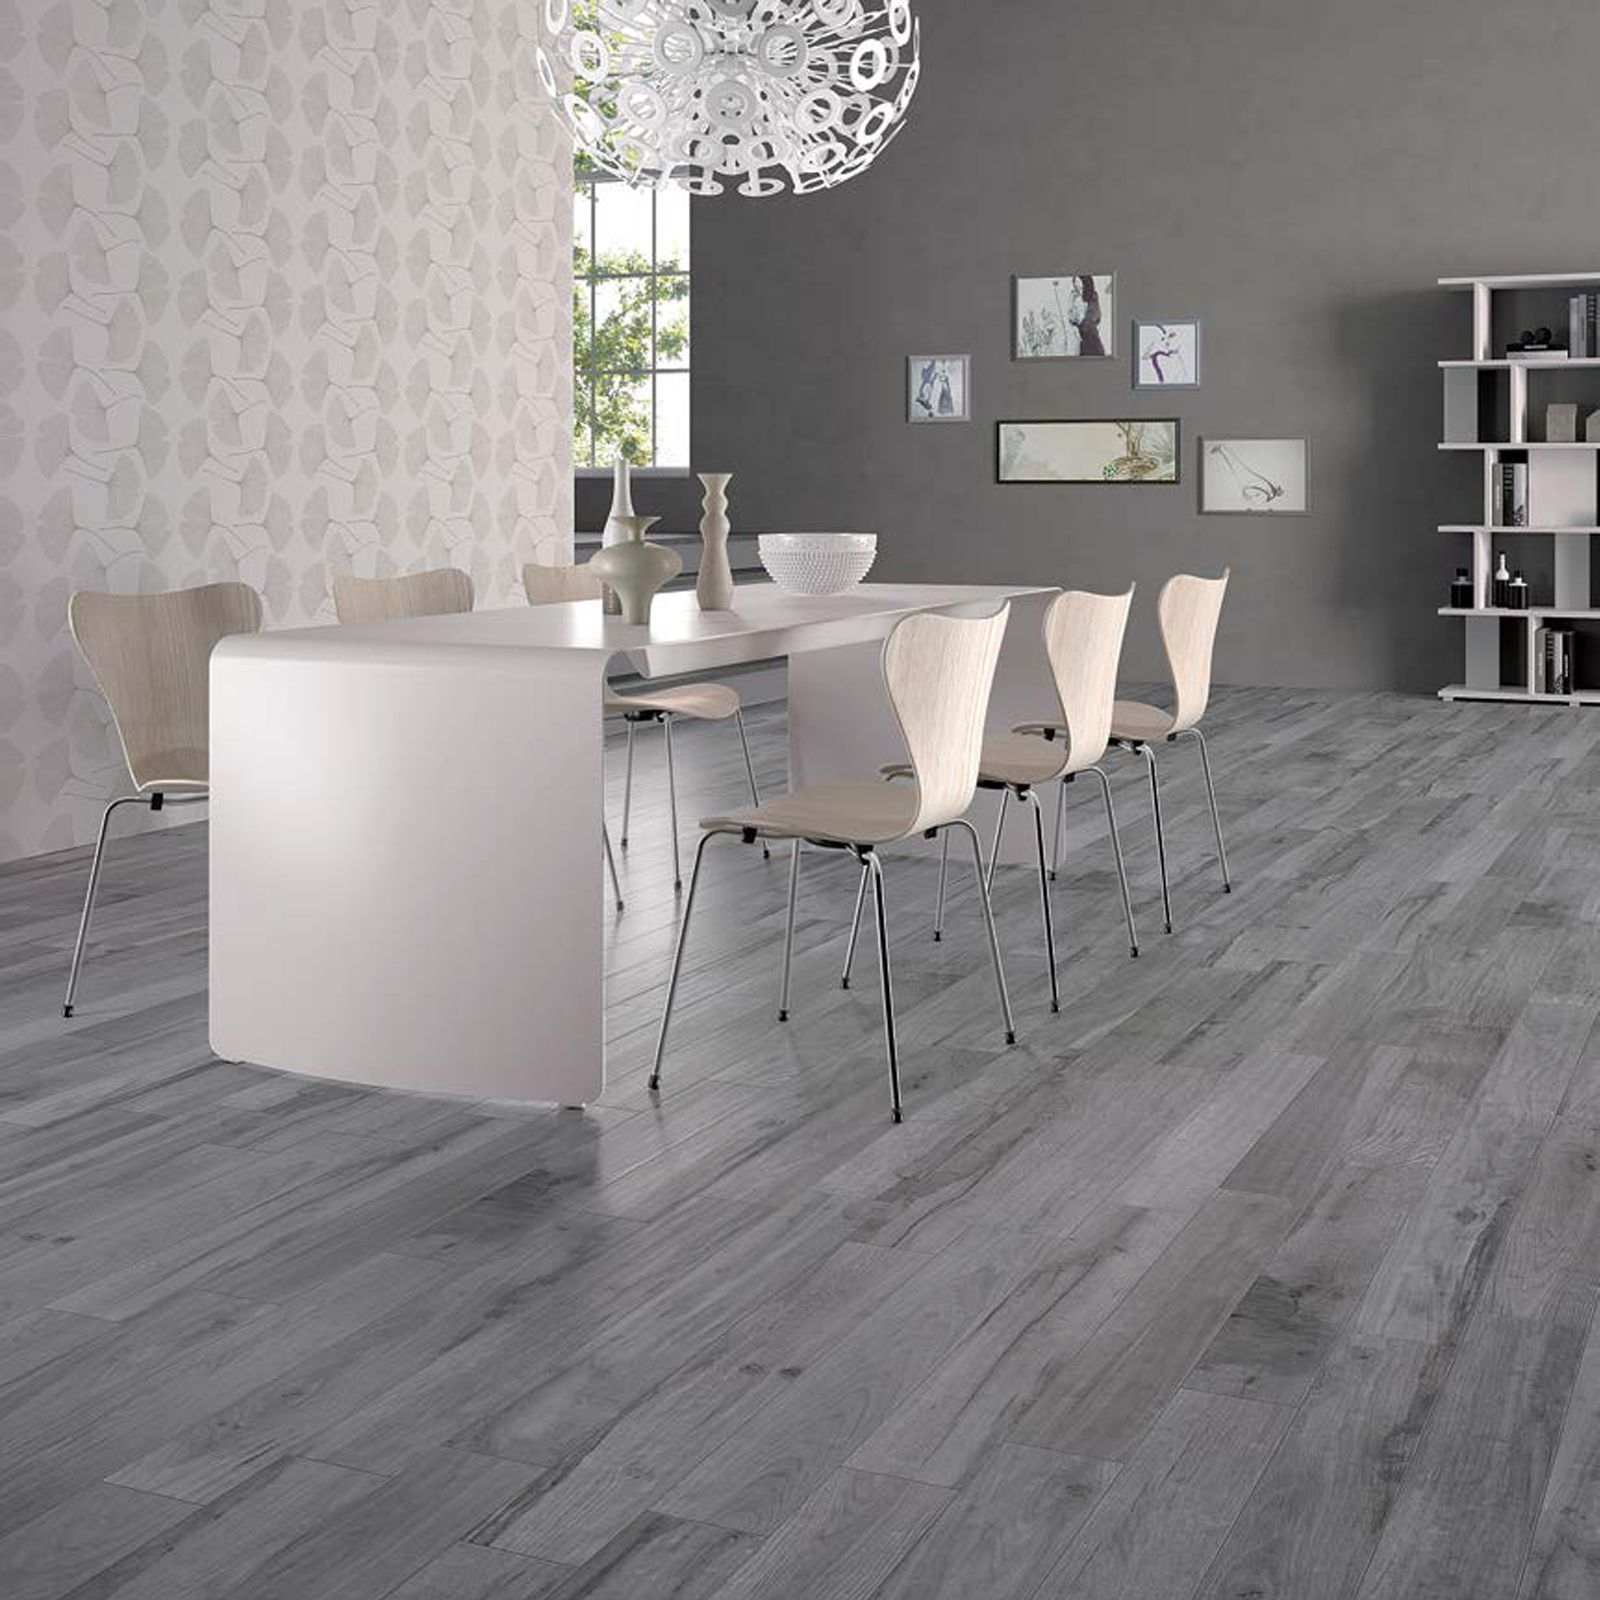 Modern dining area with tiles from Soleras collection by ABK